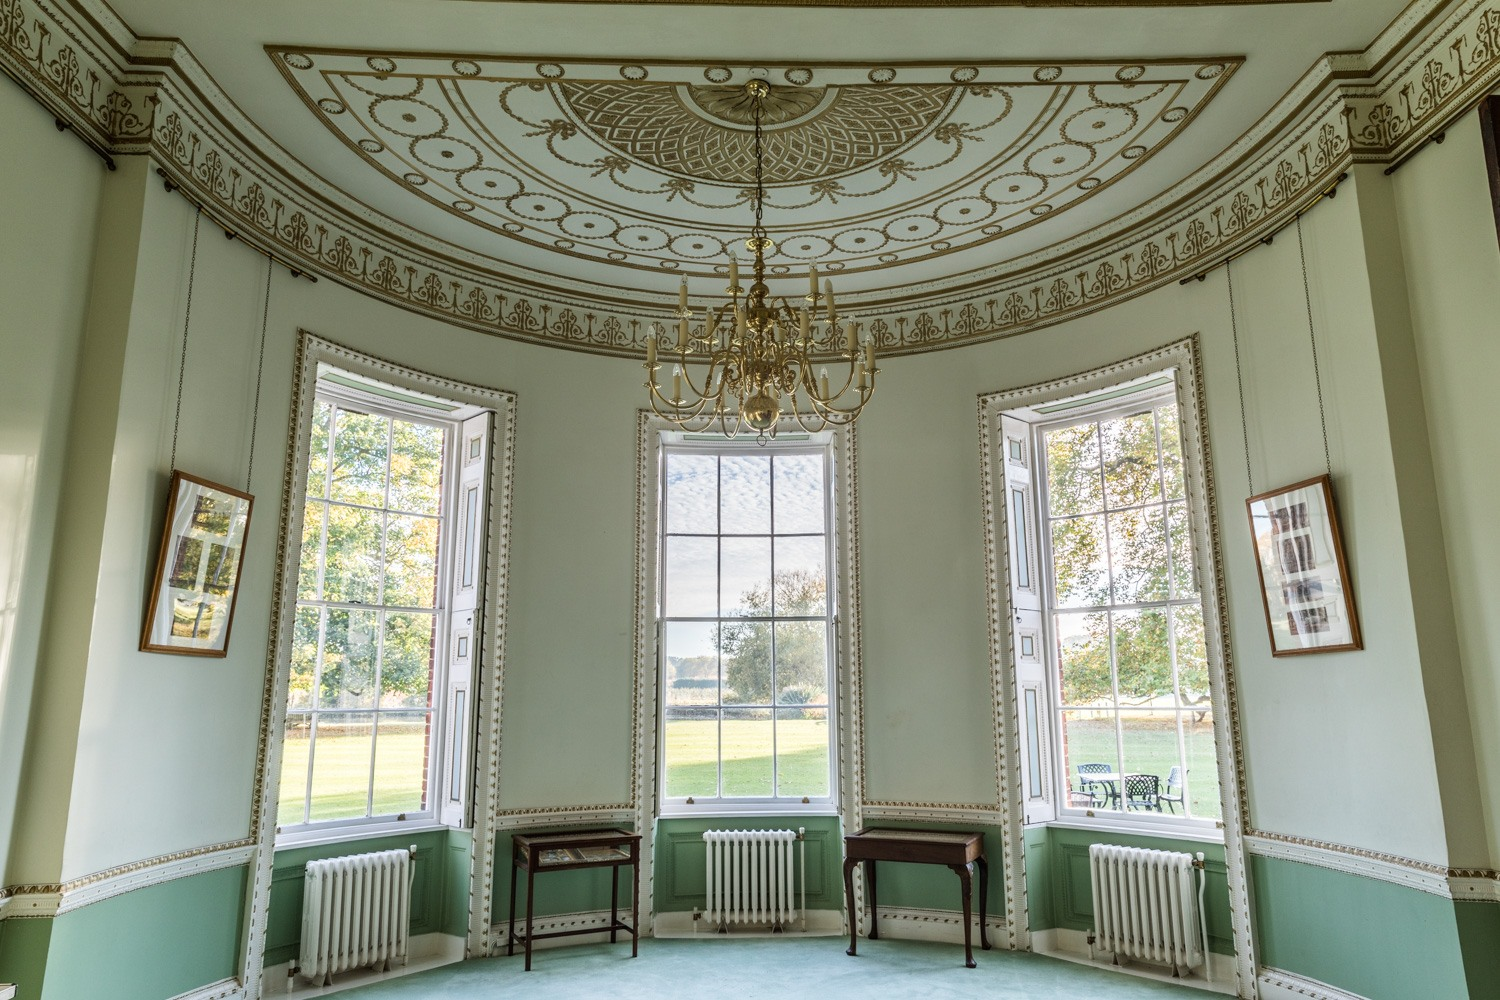 Committee Room Bradbourne House